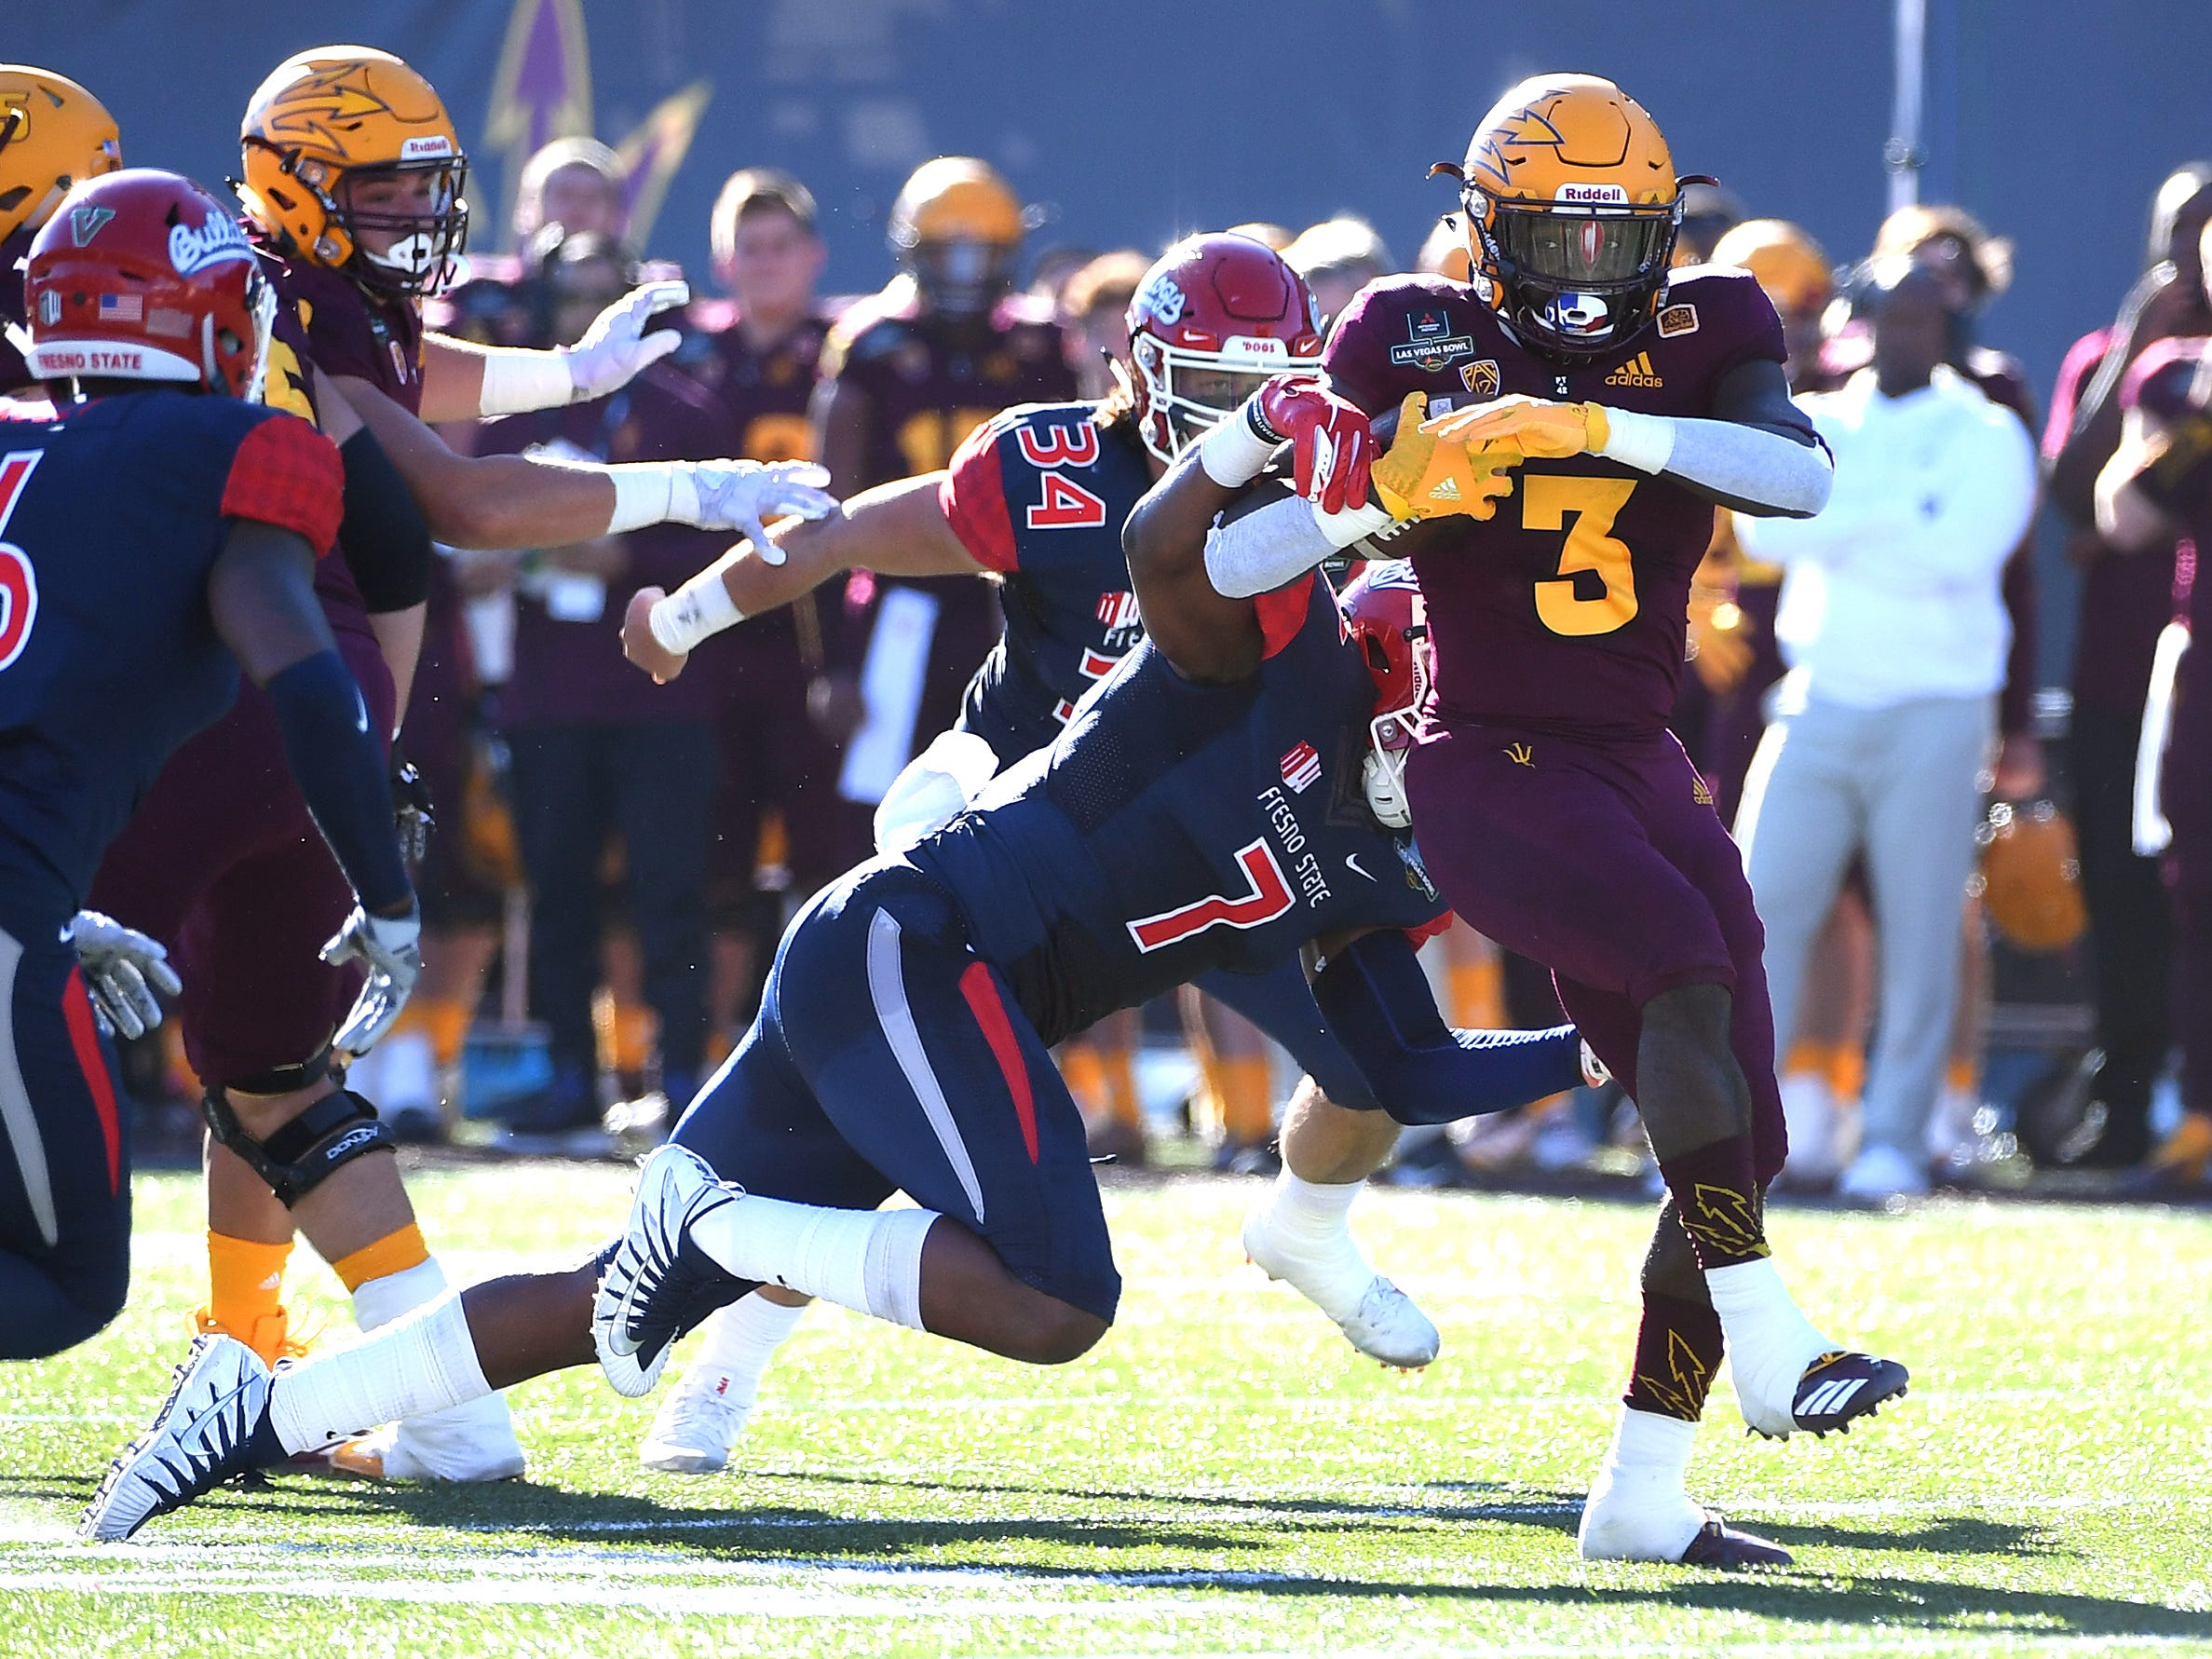 Dec 15, 2018; Las Vegas, NV, United States; Arizona State Sun Devils running back Eno Benjamin (3) breaks the tackle of Fresno State Bulldogs linebacker James Bailey (7) during the first half at Sam Boyd Stadium.